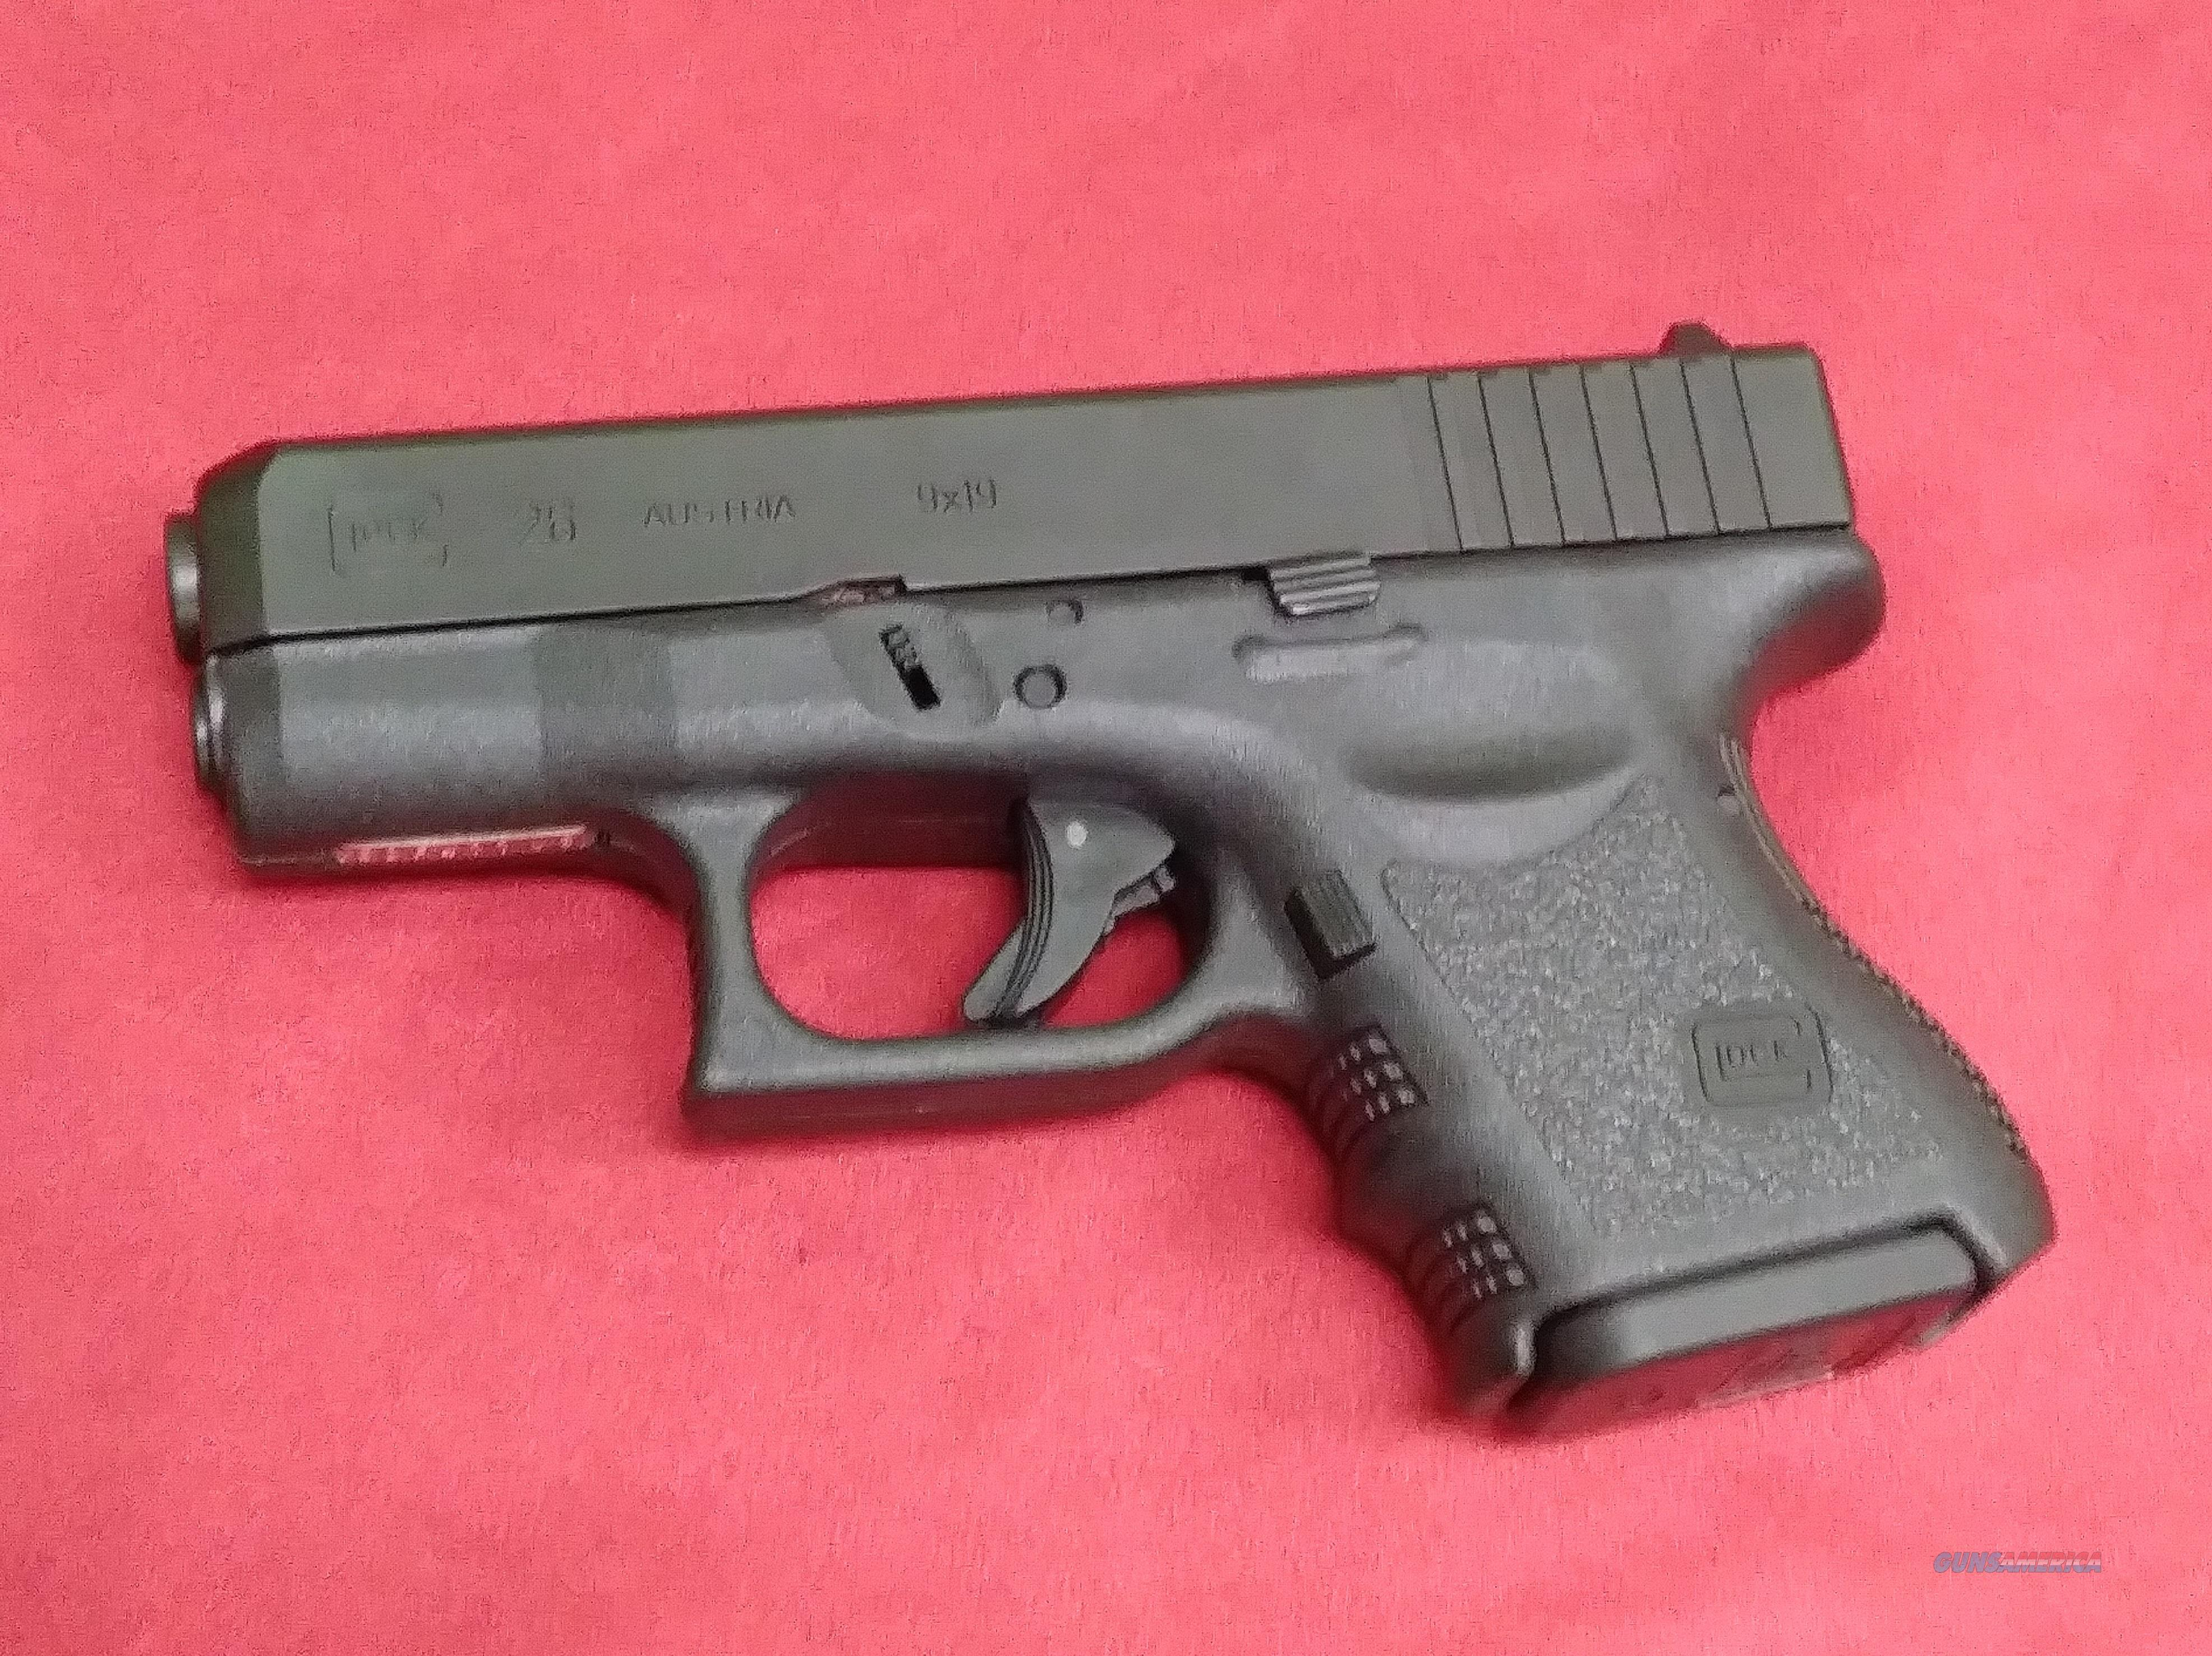 Glock 26 Gen 3, 9mm Cal, Fixed Sights, Previously Owned  Guns > Pistols > Glock Pistols > 26/27